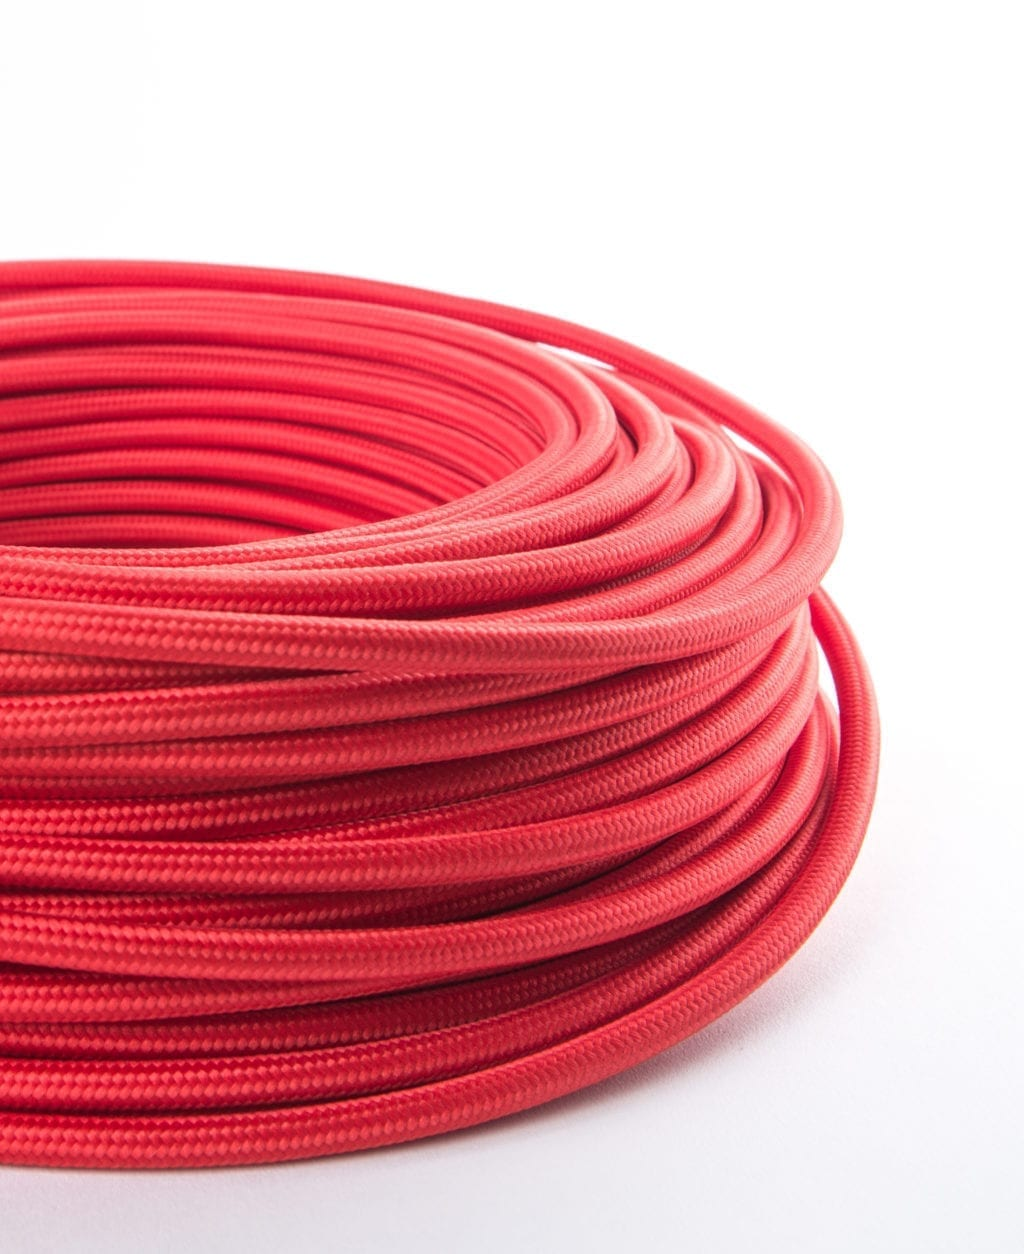 Close Up Red Smooth Fabric Cable Coil on White Background